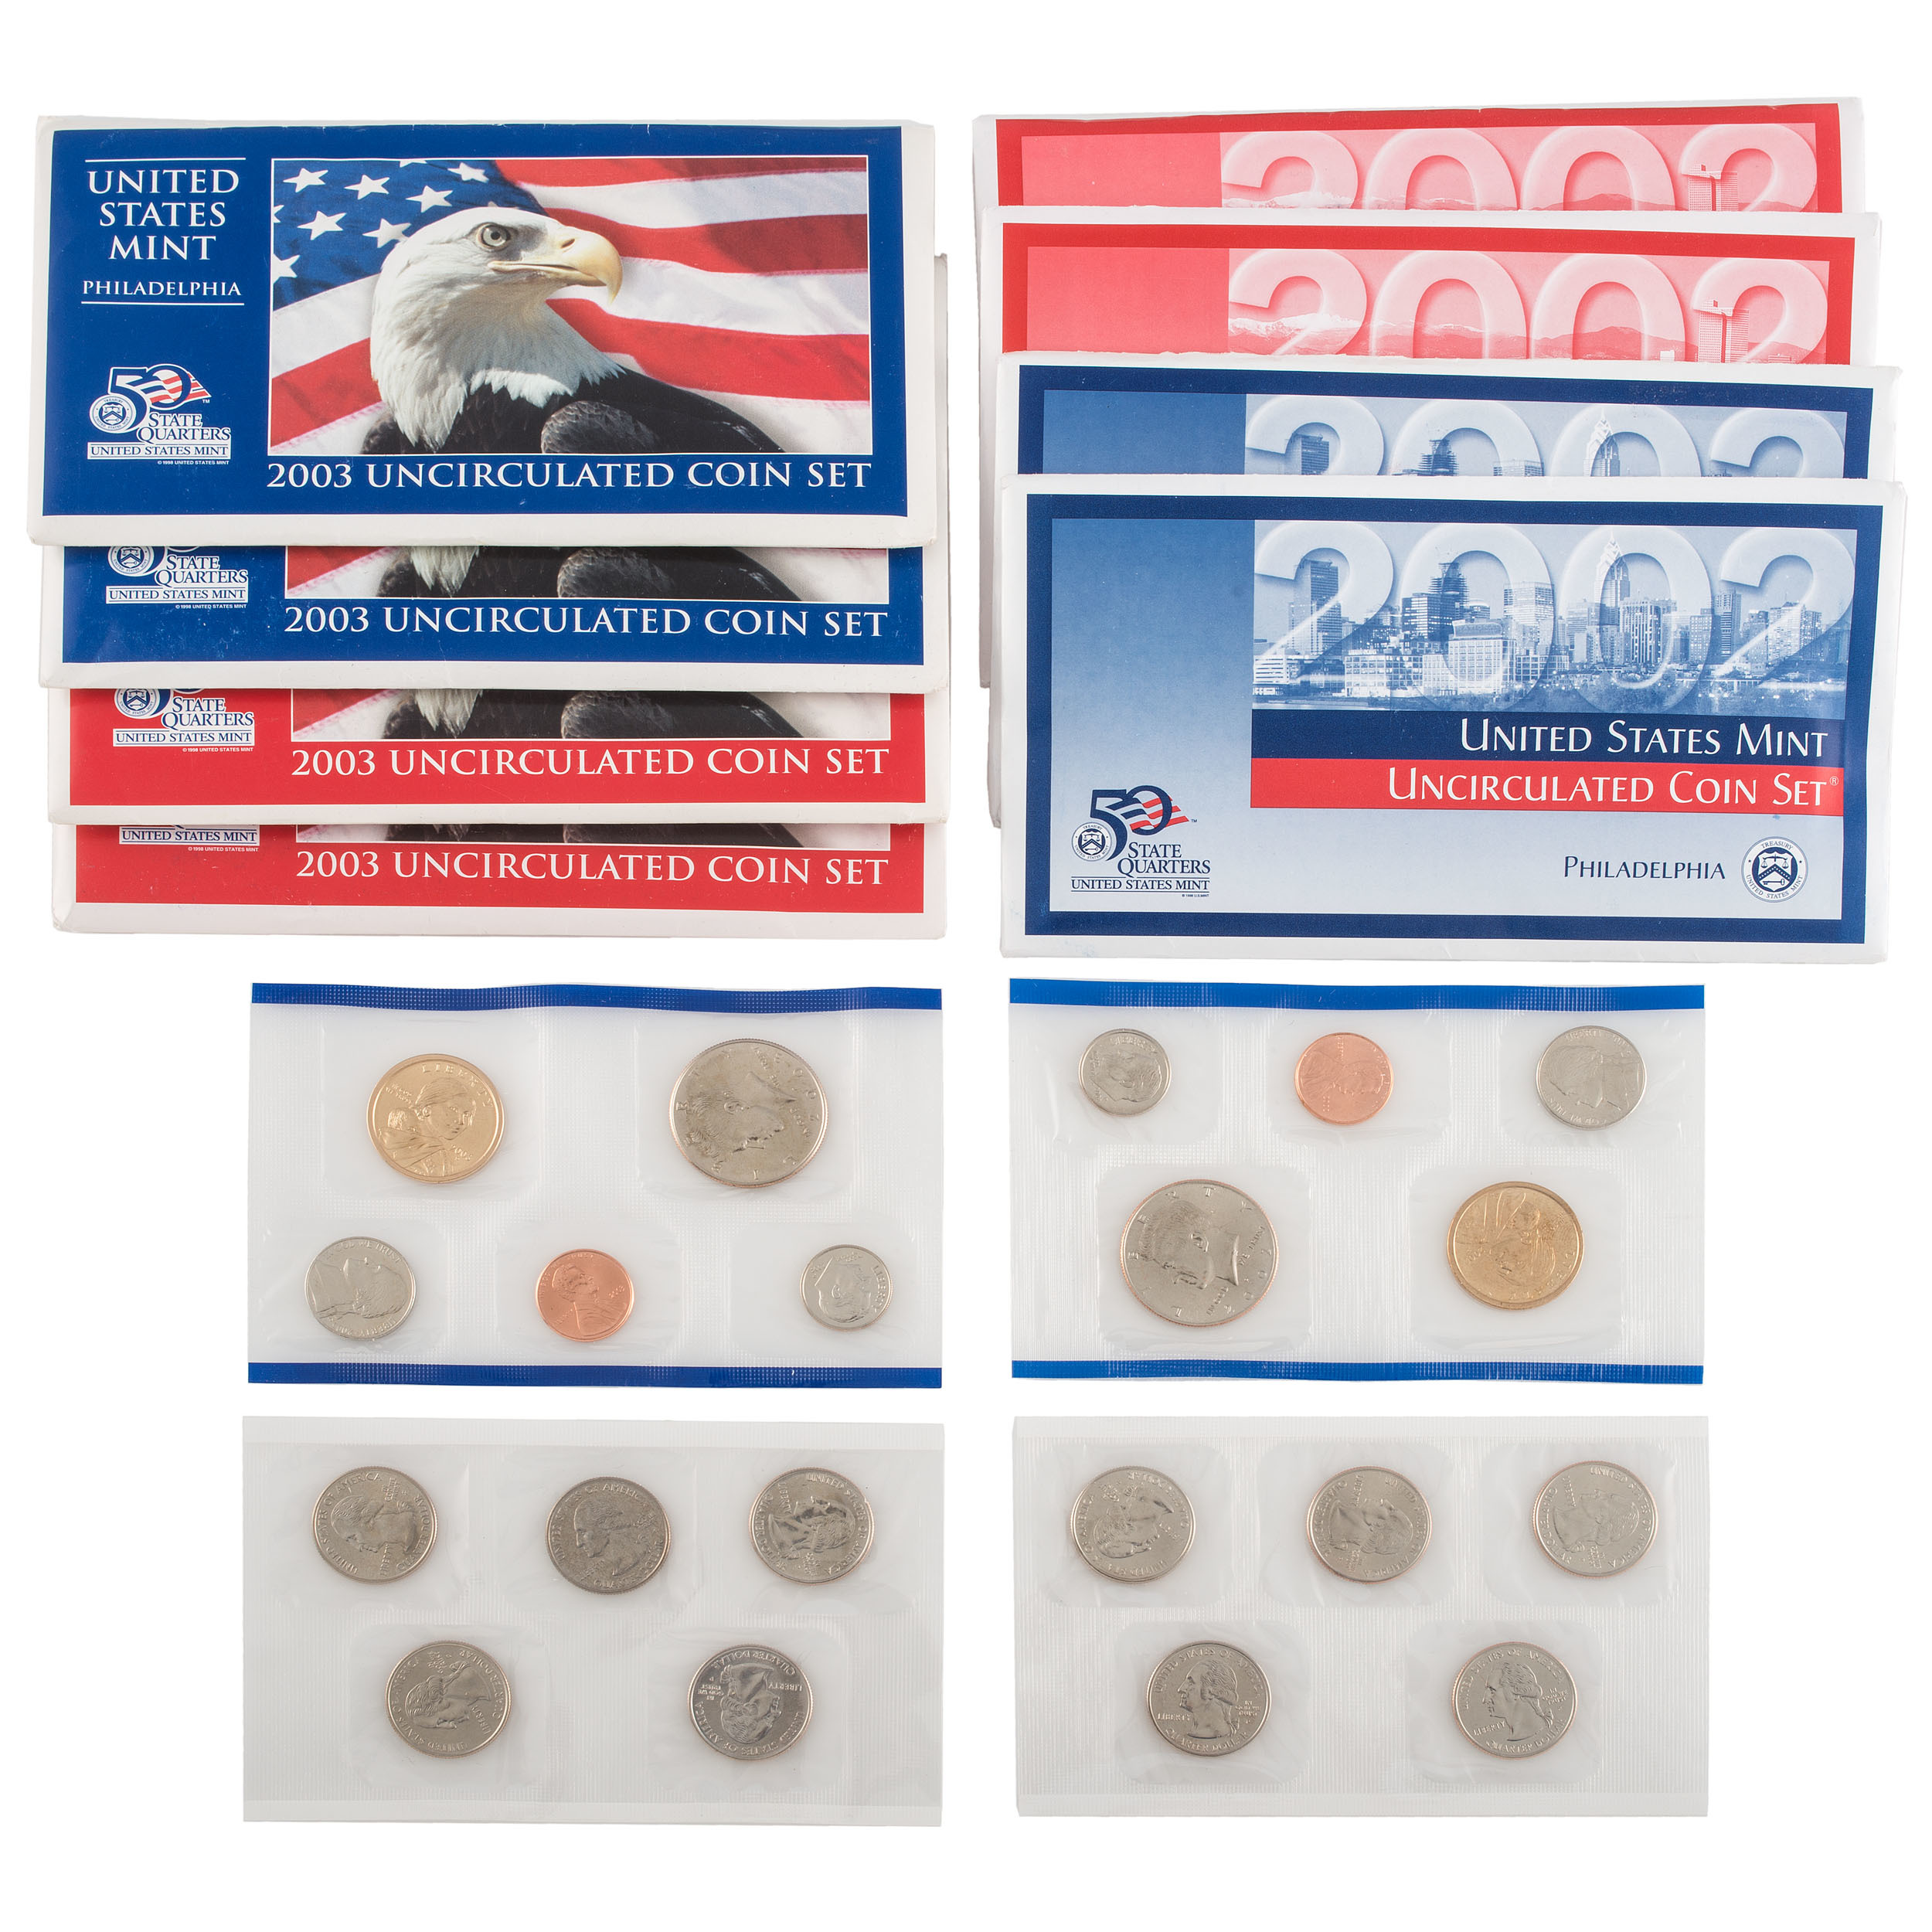 2003 United States Mint Uncirculated Coin Set